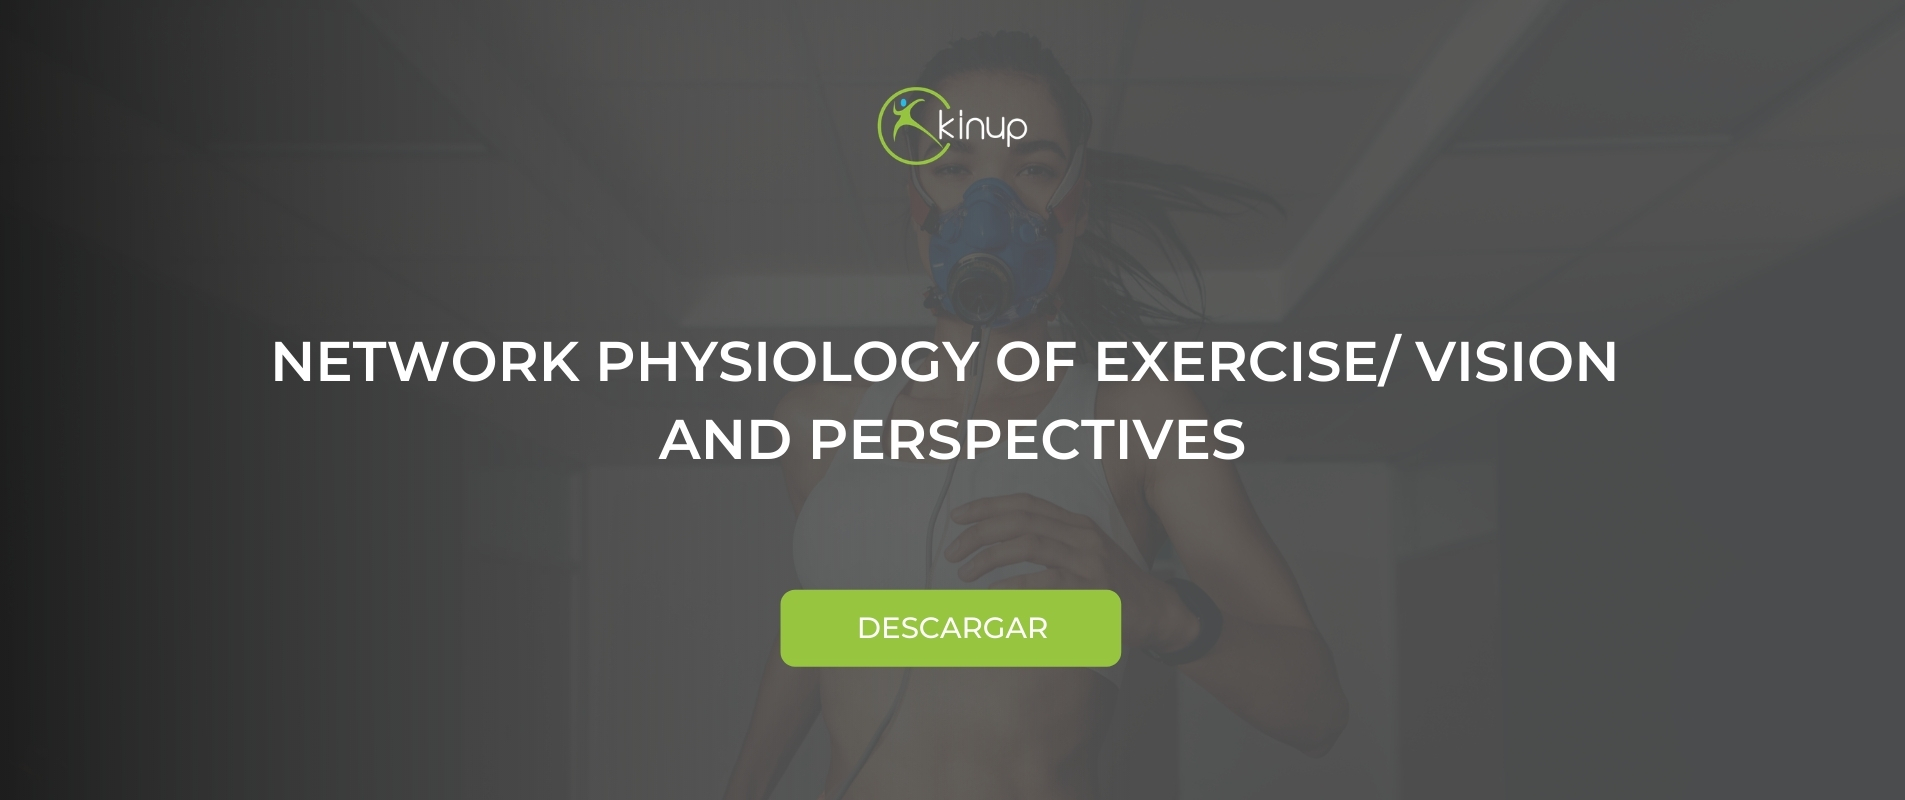 Network Physiology of Exercise/ Vision and Perspectives